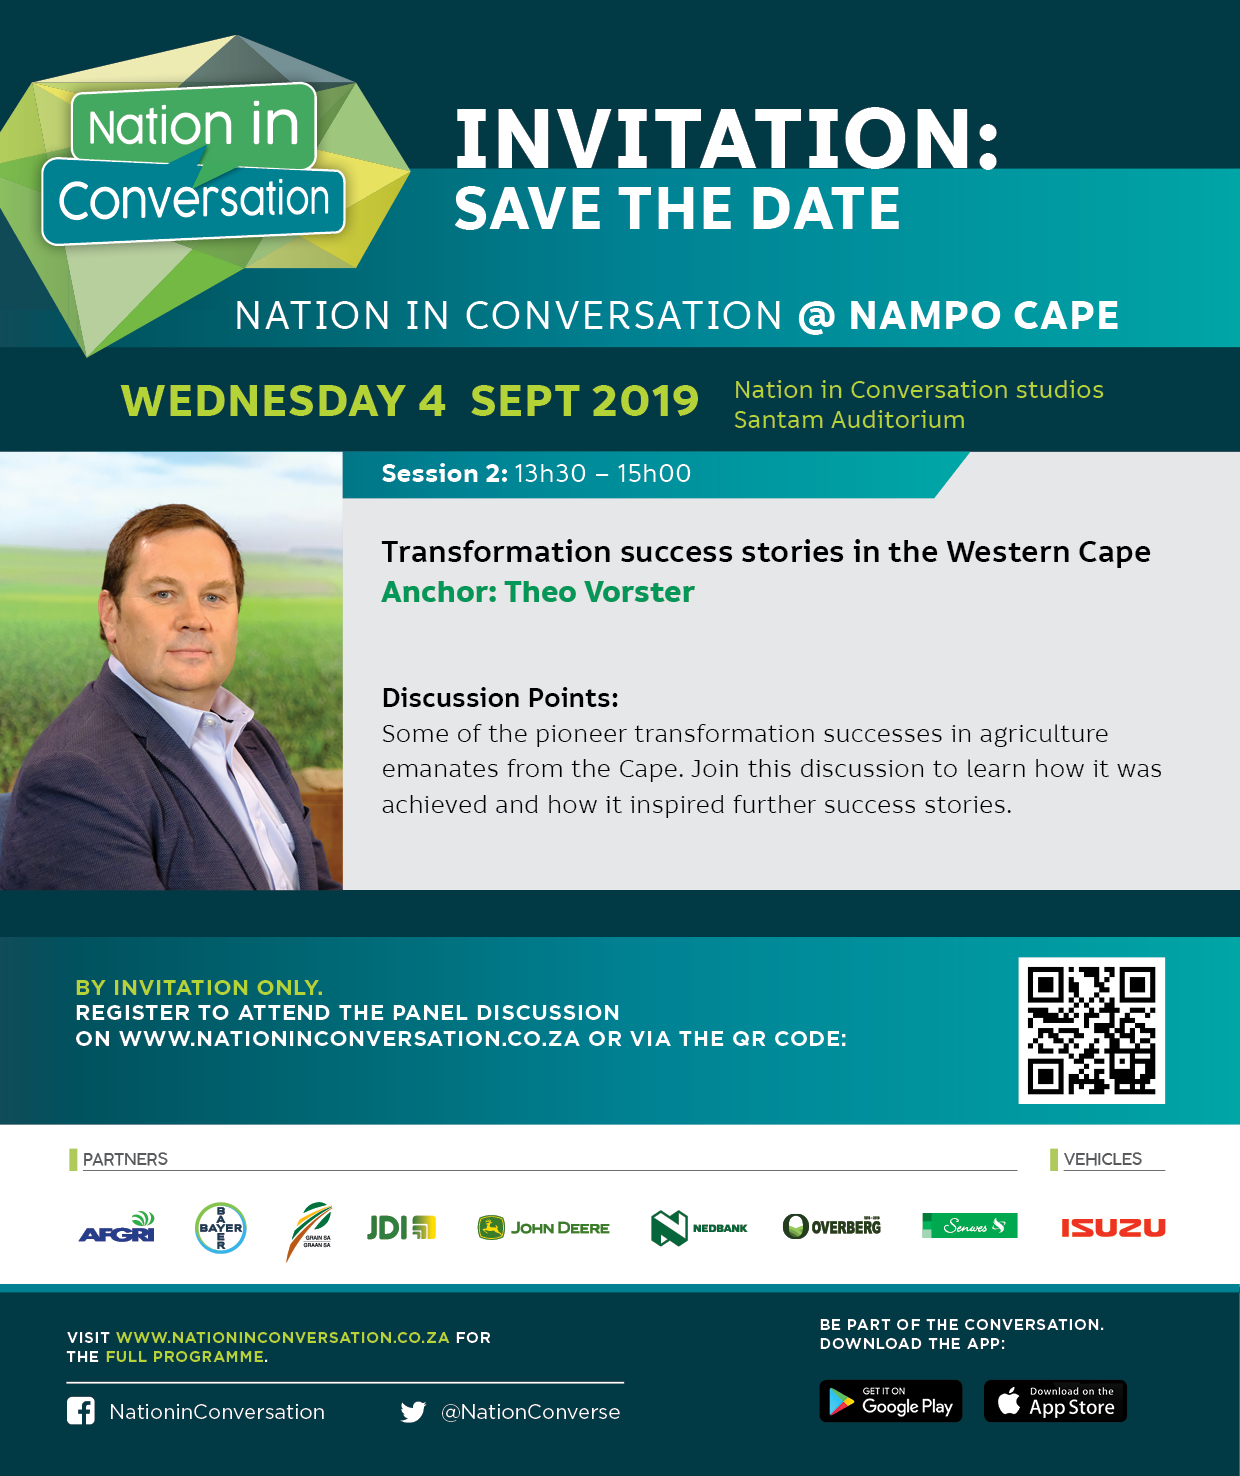 Transformation success stories in the Western Cape